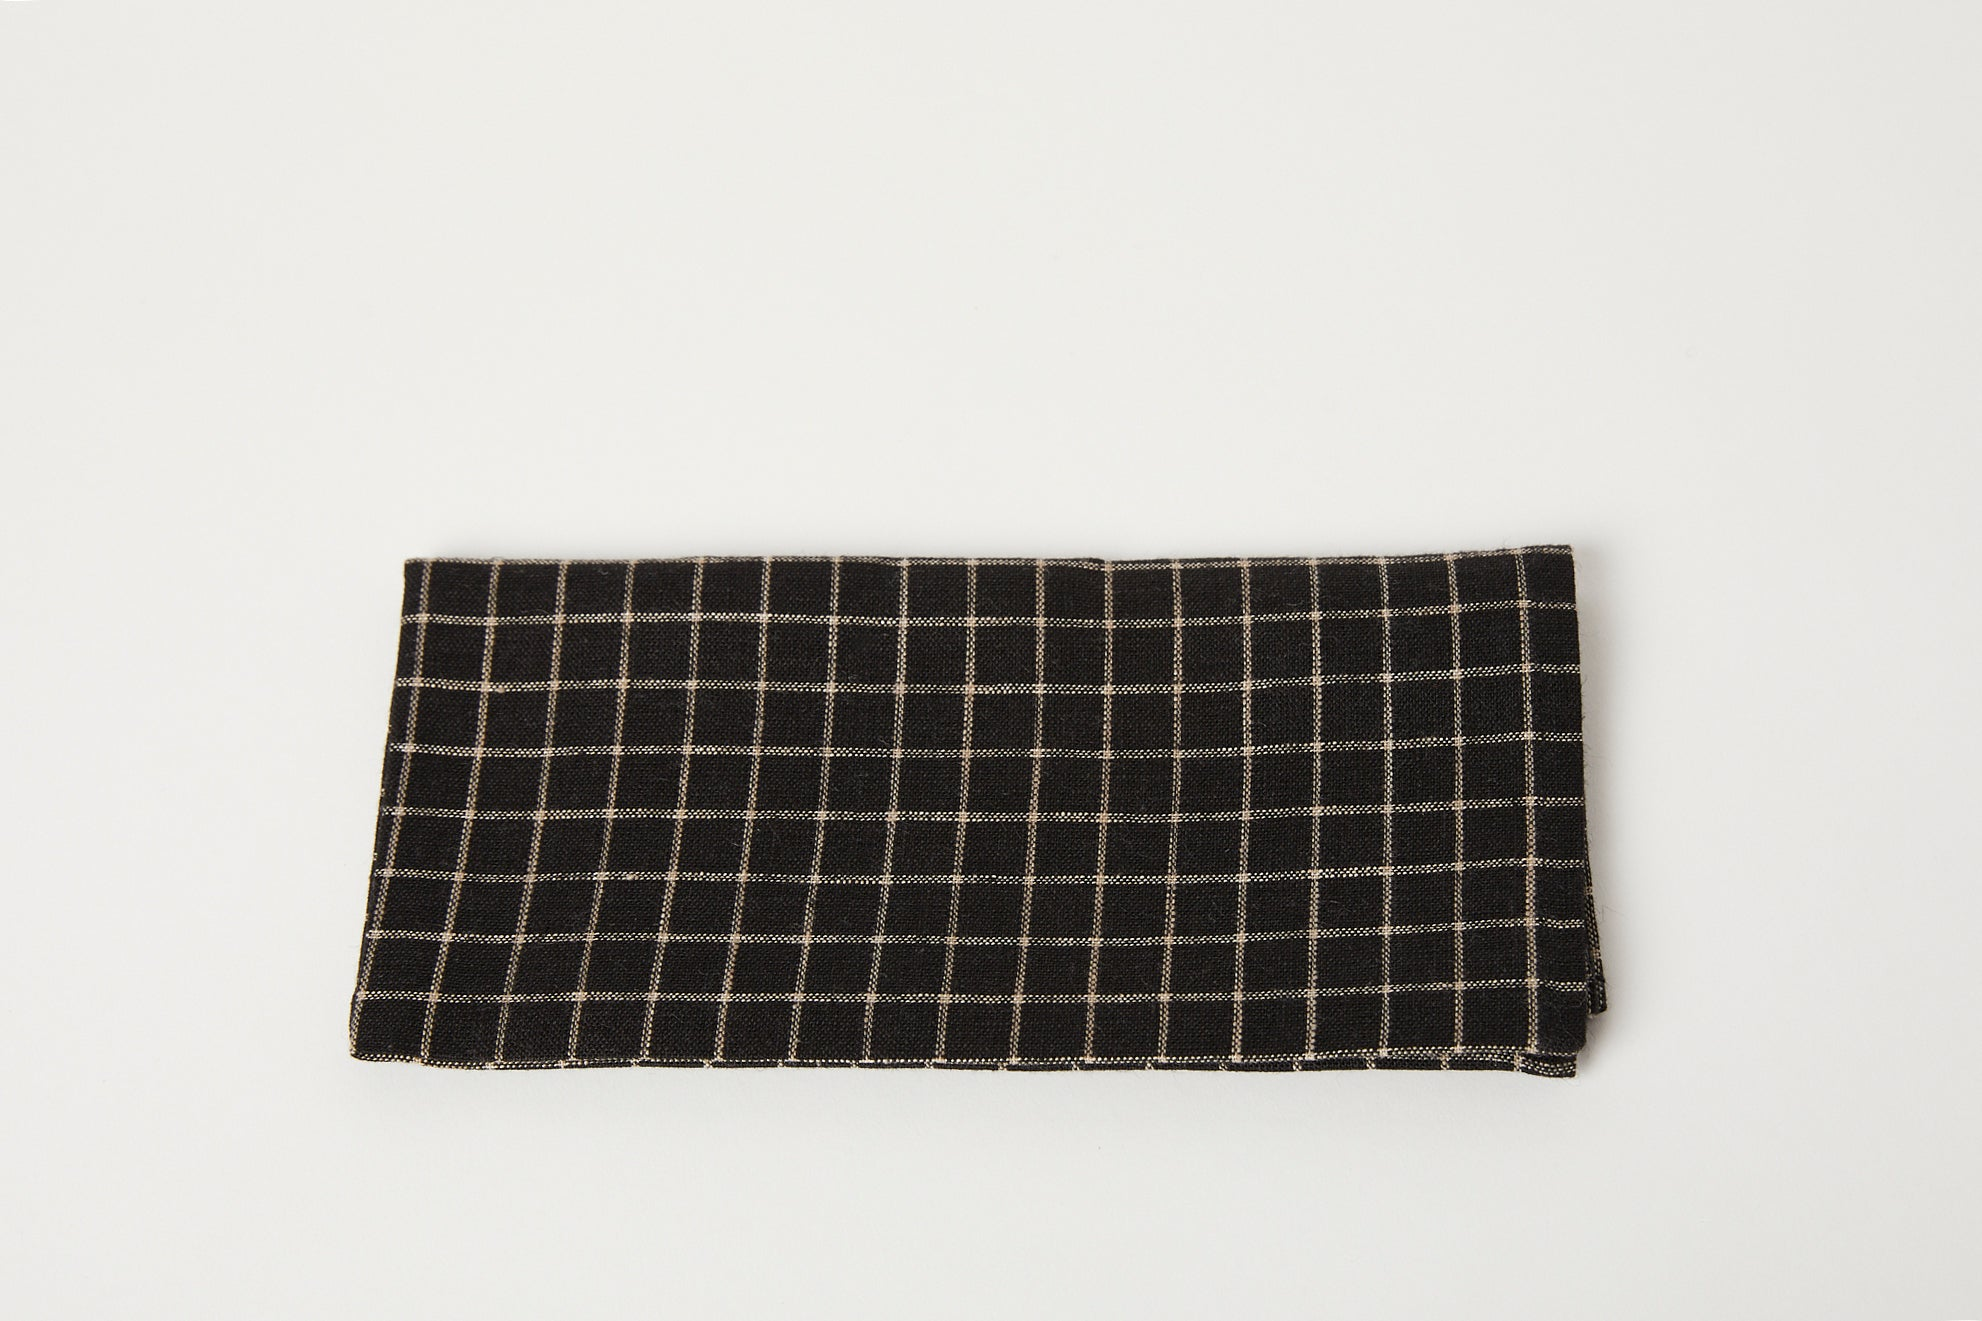 Black and Beige Plaid Napkin